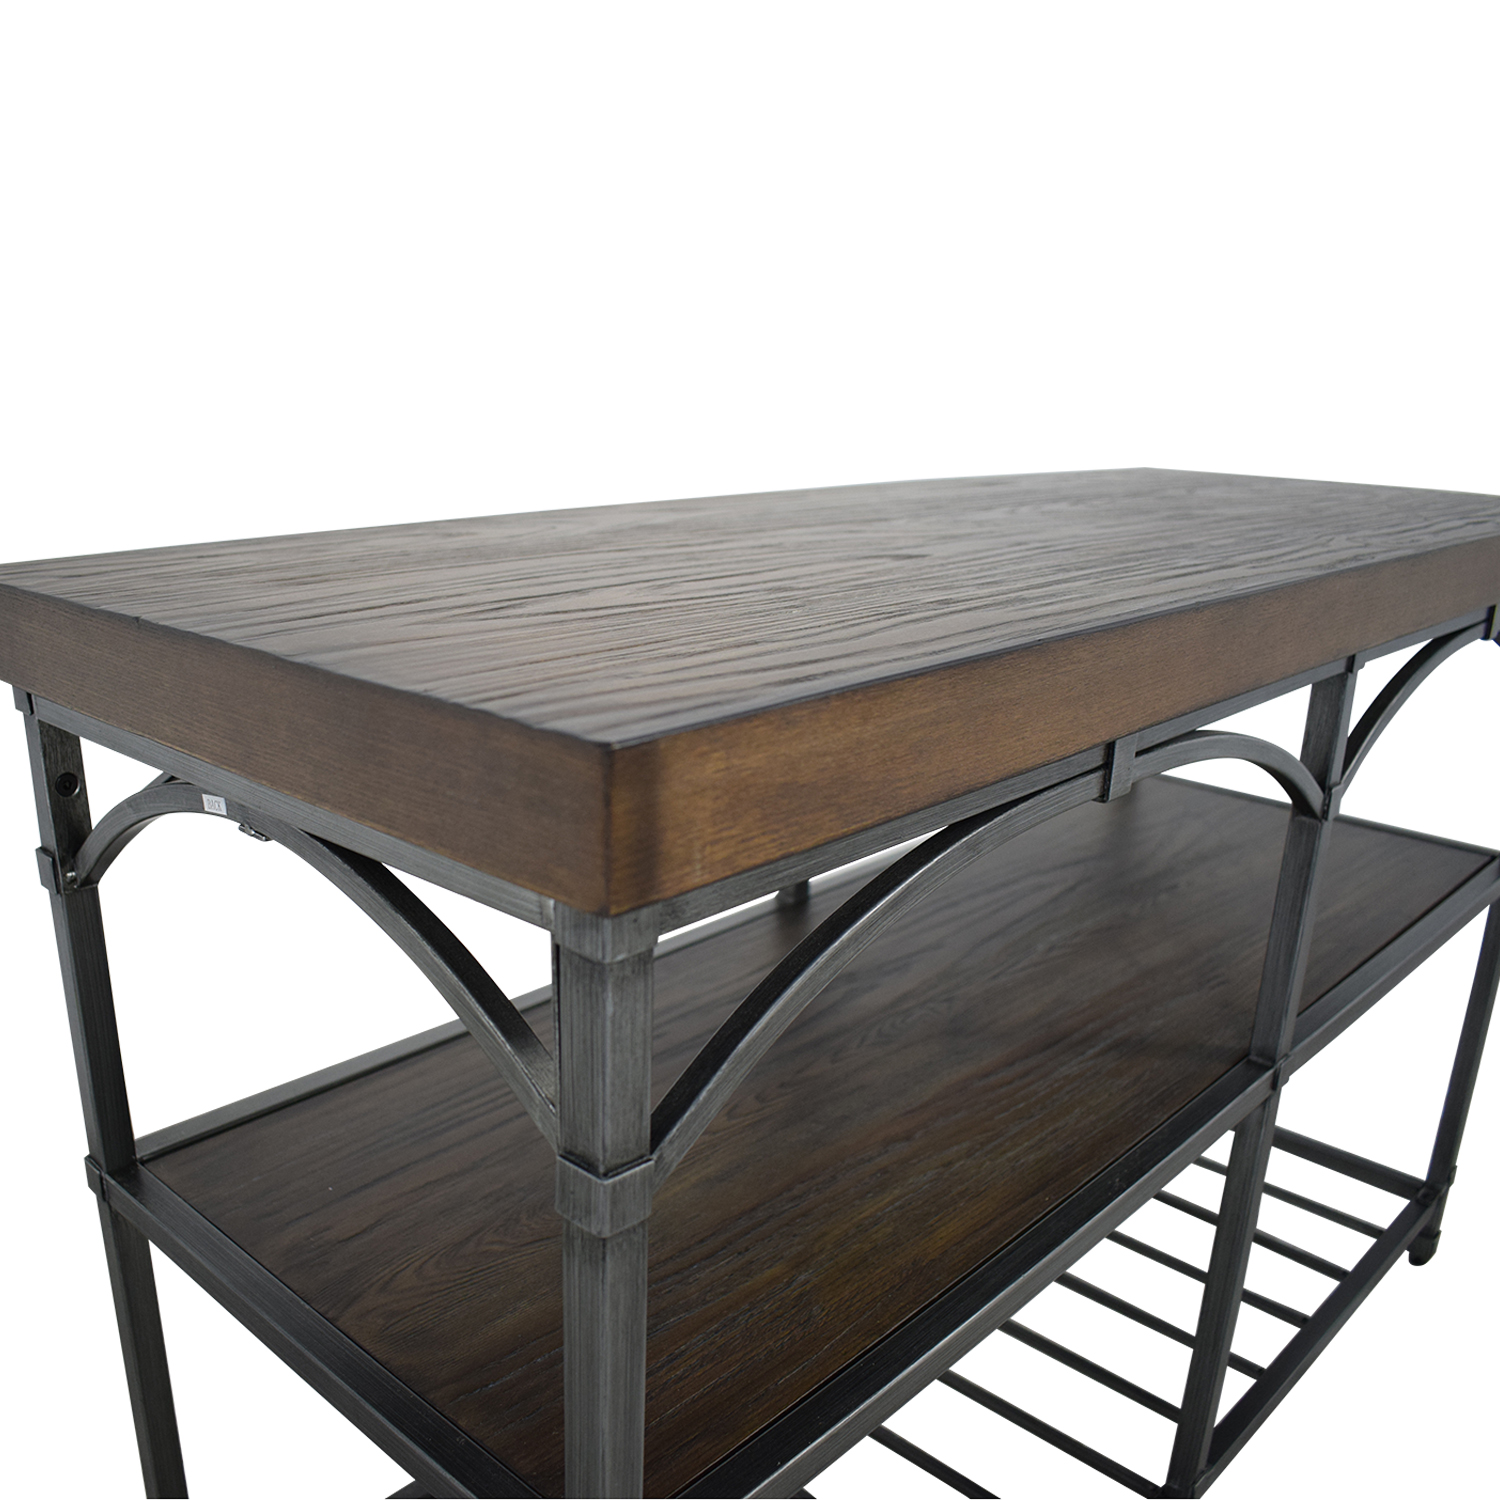 buy Trent Austin Franklin Console Table Trent Austin Design